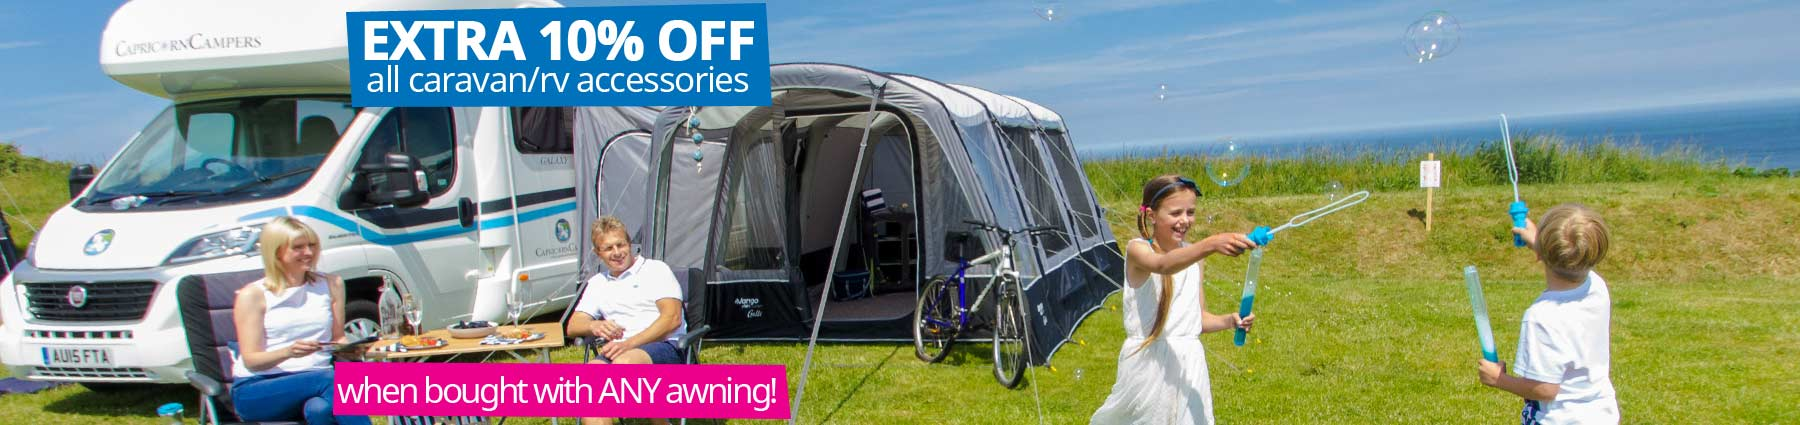 Home Large | 10% Off Caravanning